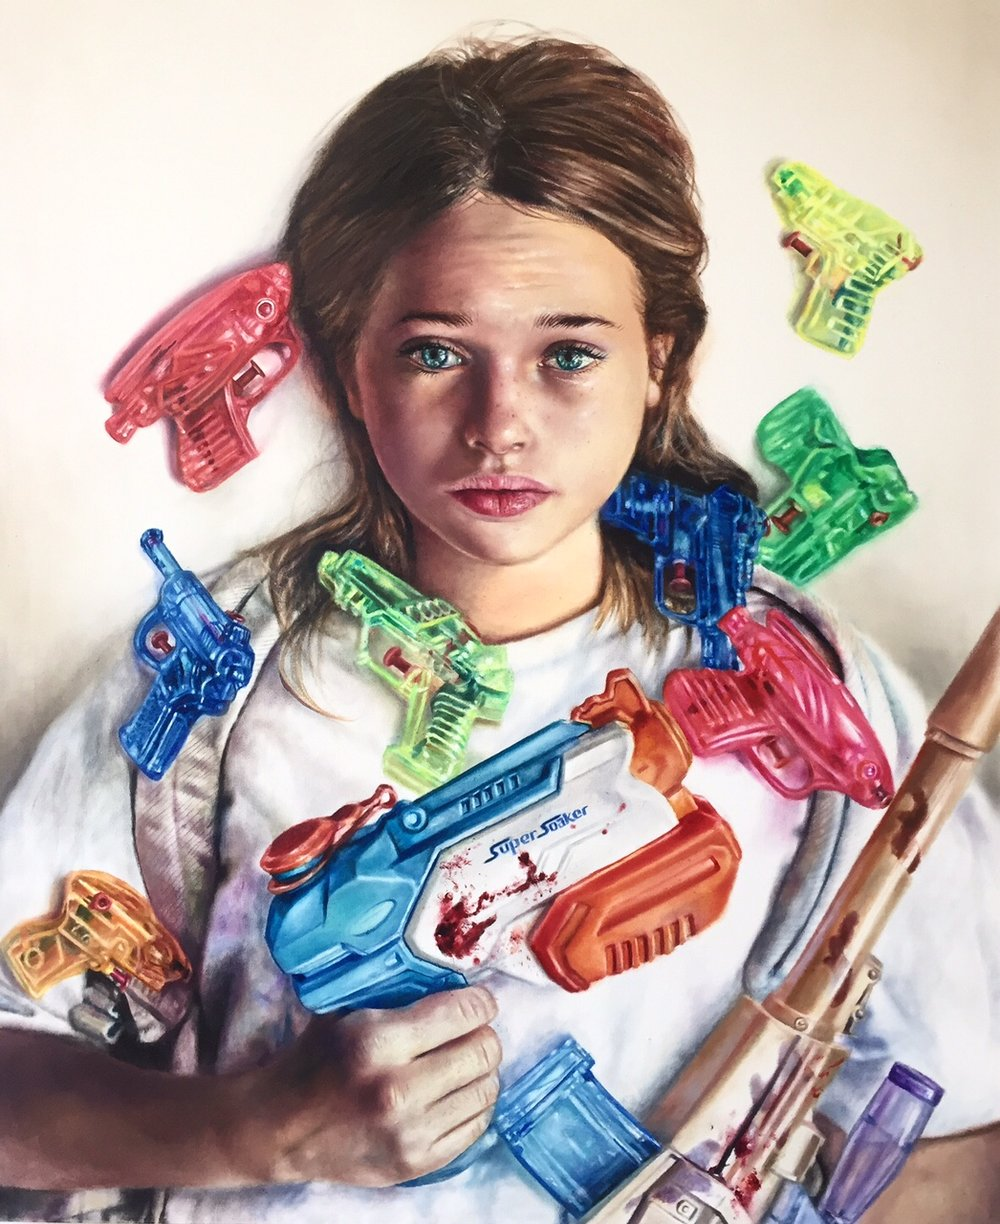 Toy Guns 2017 Saatchi gallery, private collector